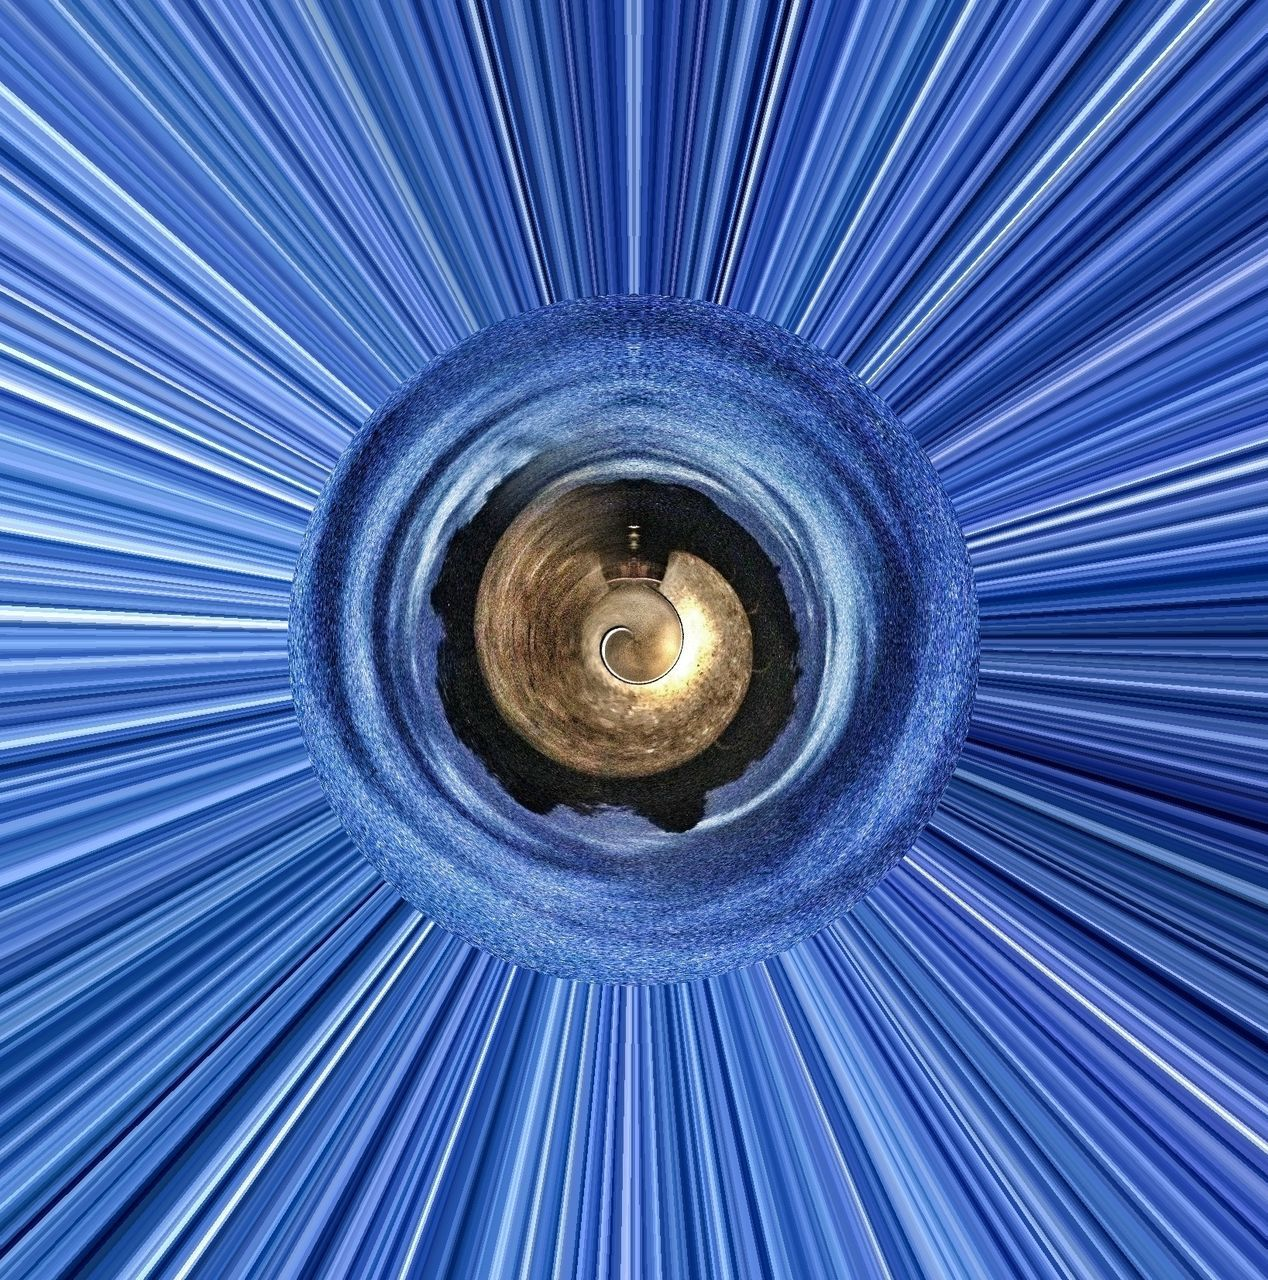 full frame, backgrounds, blue, illuminated, abstract, pattern, no people, close-up, concentric, technology, futuristic, day